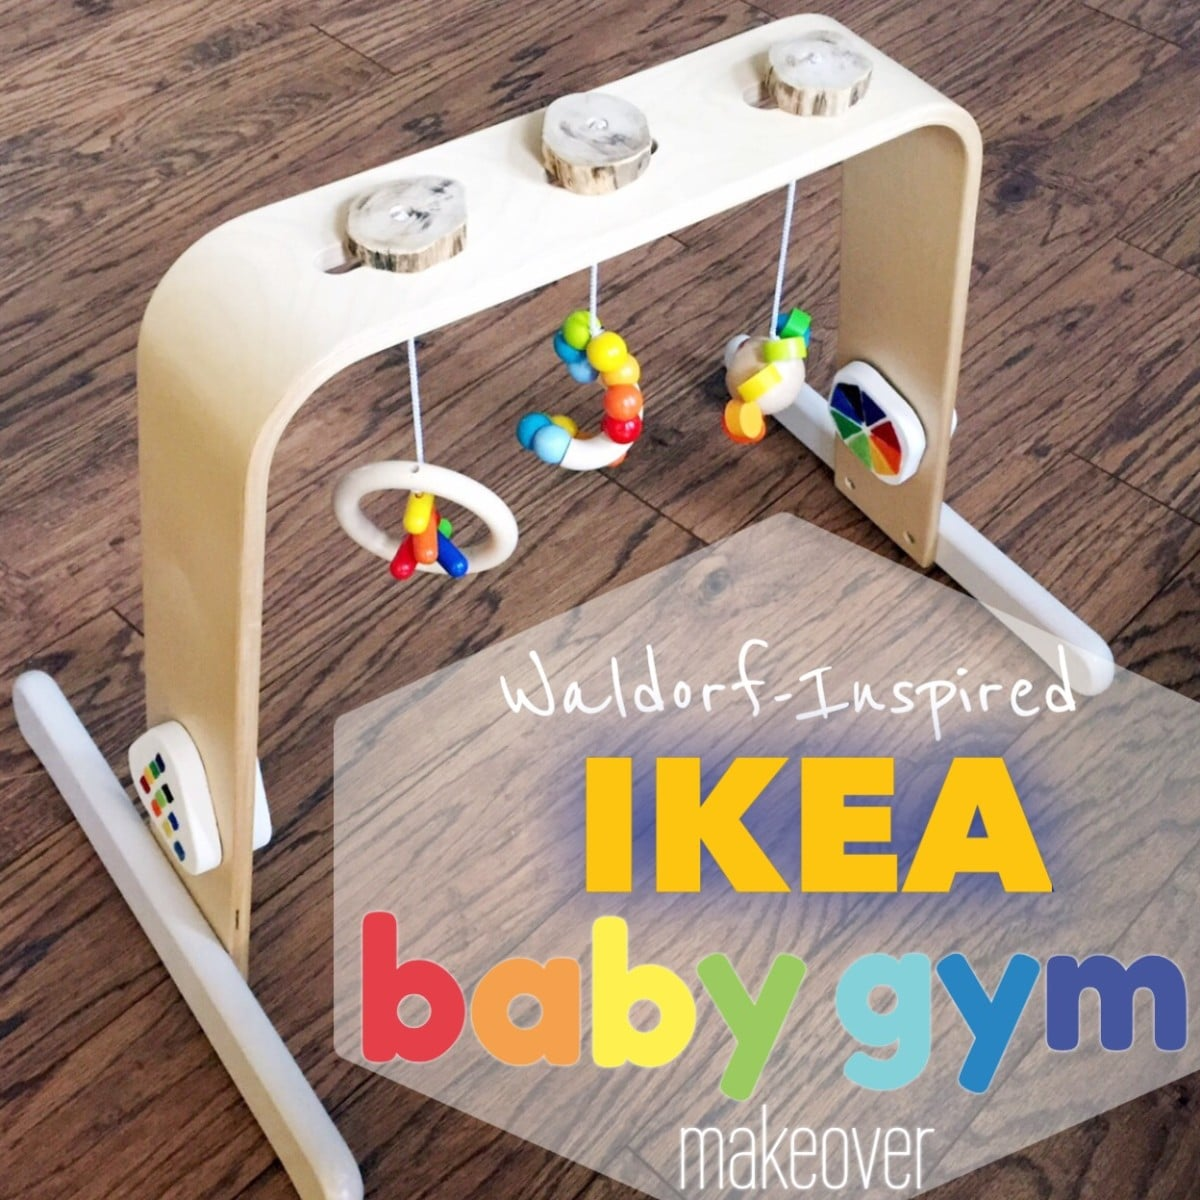 Under The Rainbow Baby Gym Ikea Hackers Ikea Hackers